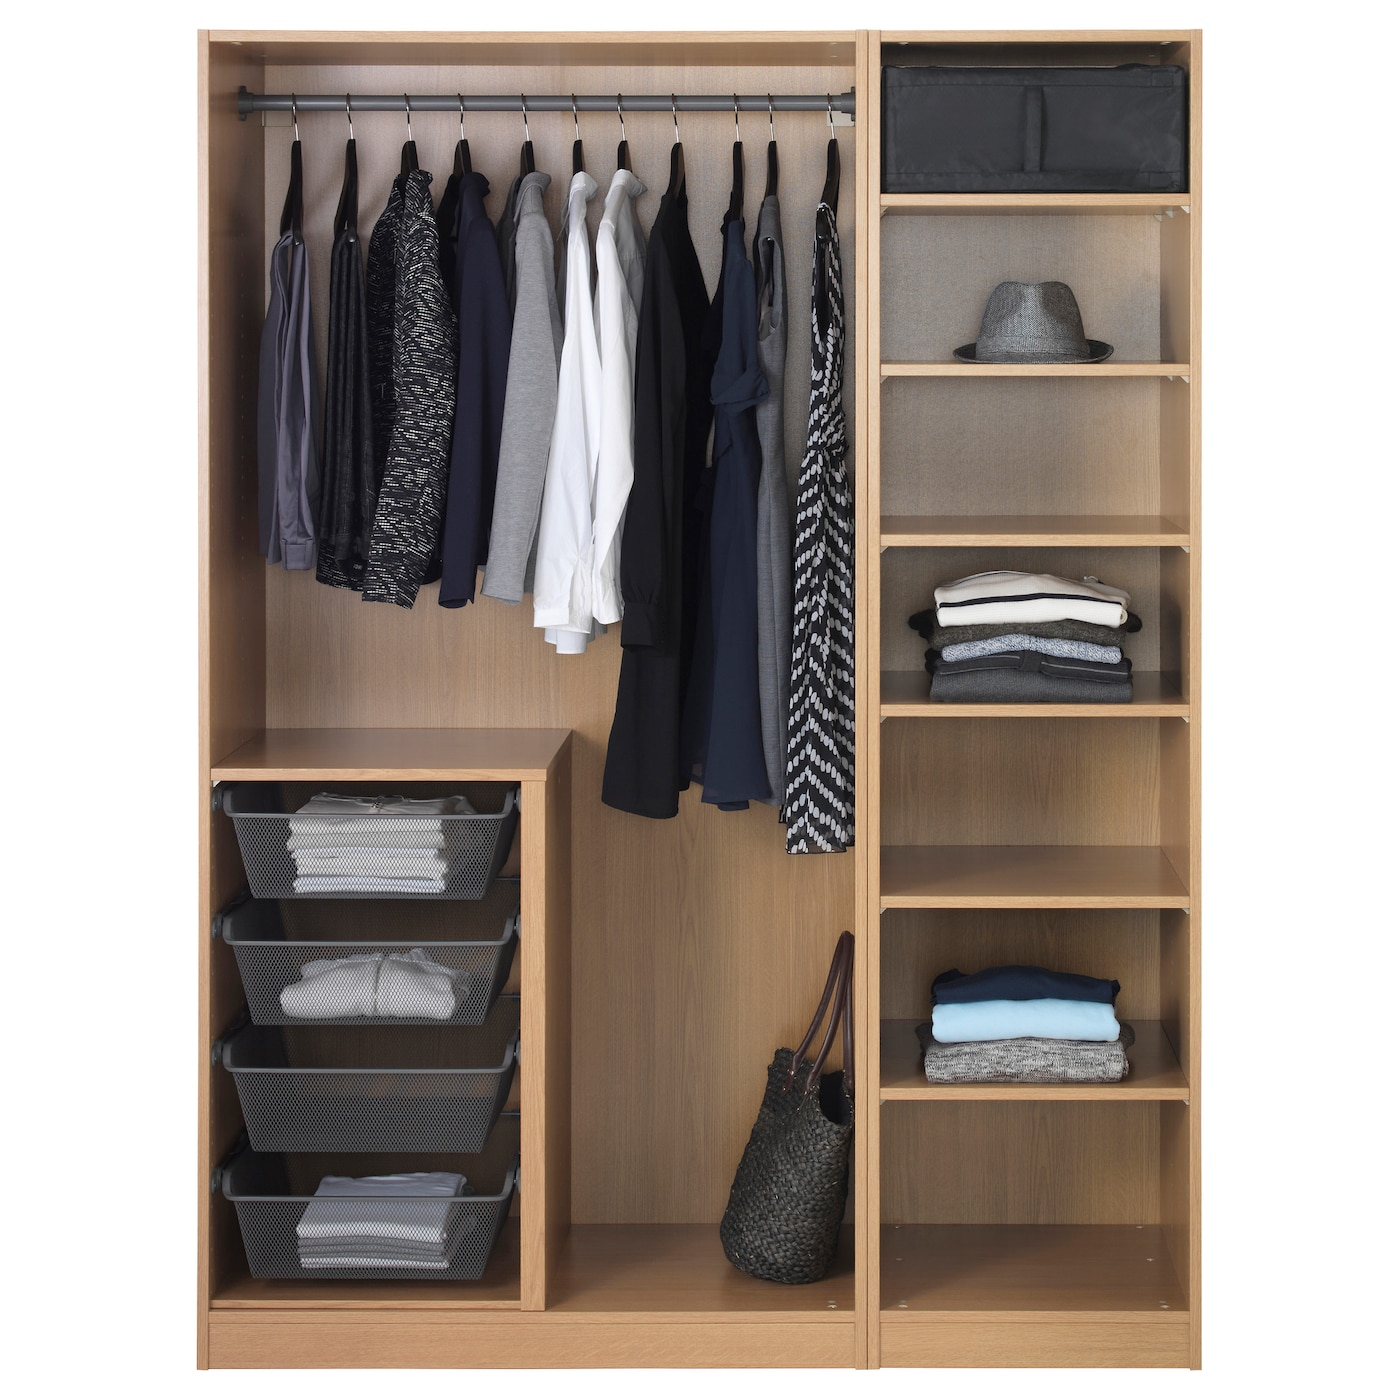 pax wardrobe oak effect nexus vikedal 150x60x201 cm ikea. Black Bedroom Furniture Sets. Home Design Ideas